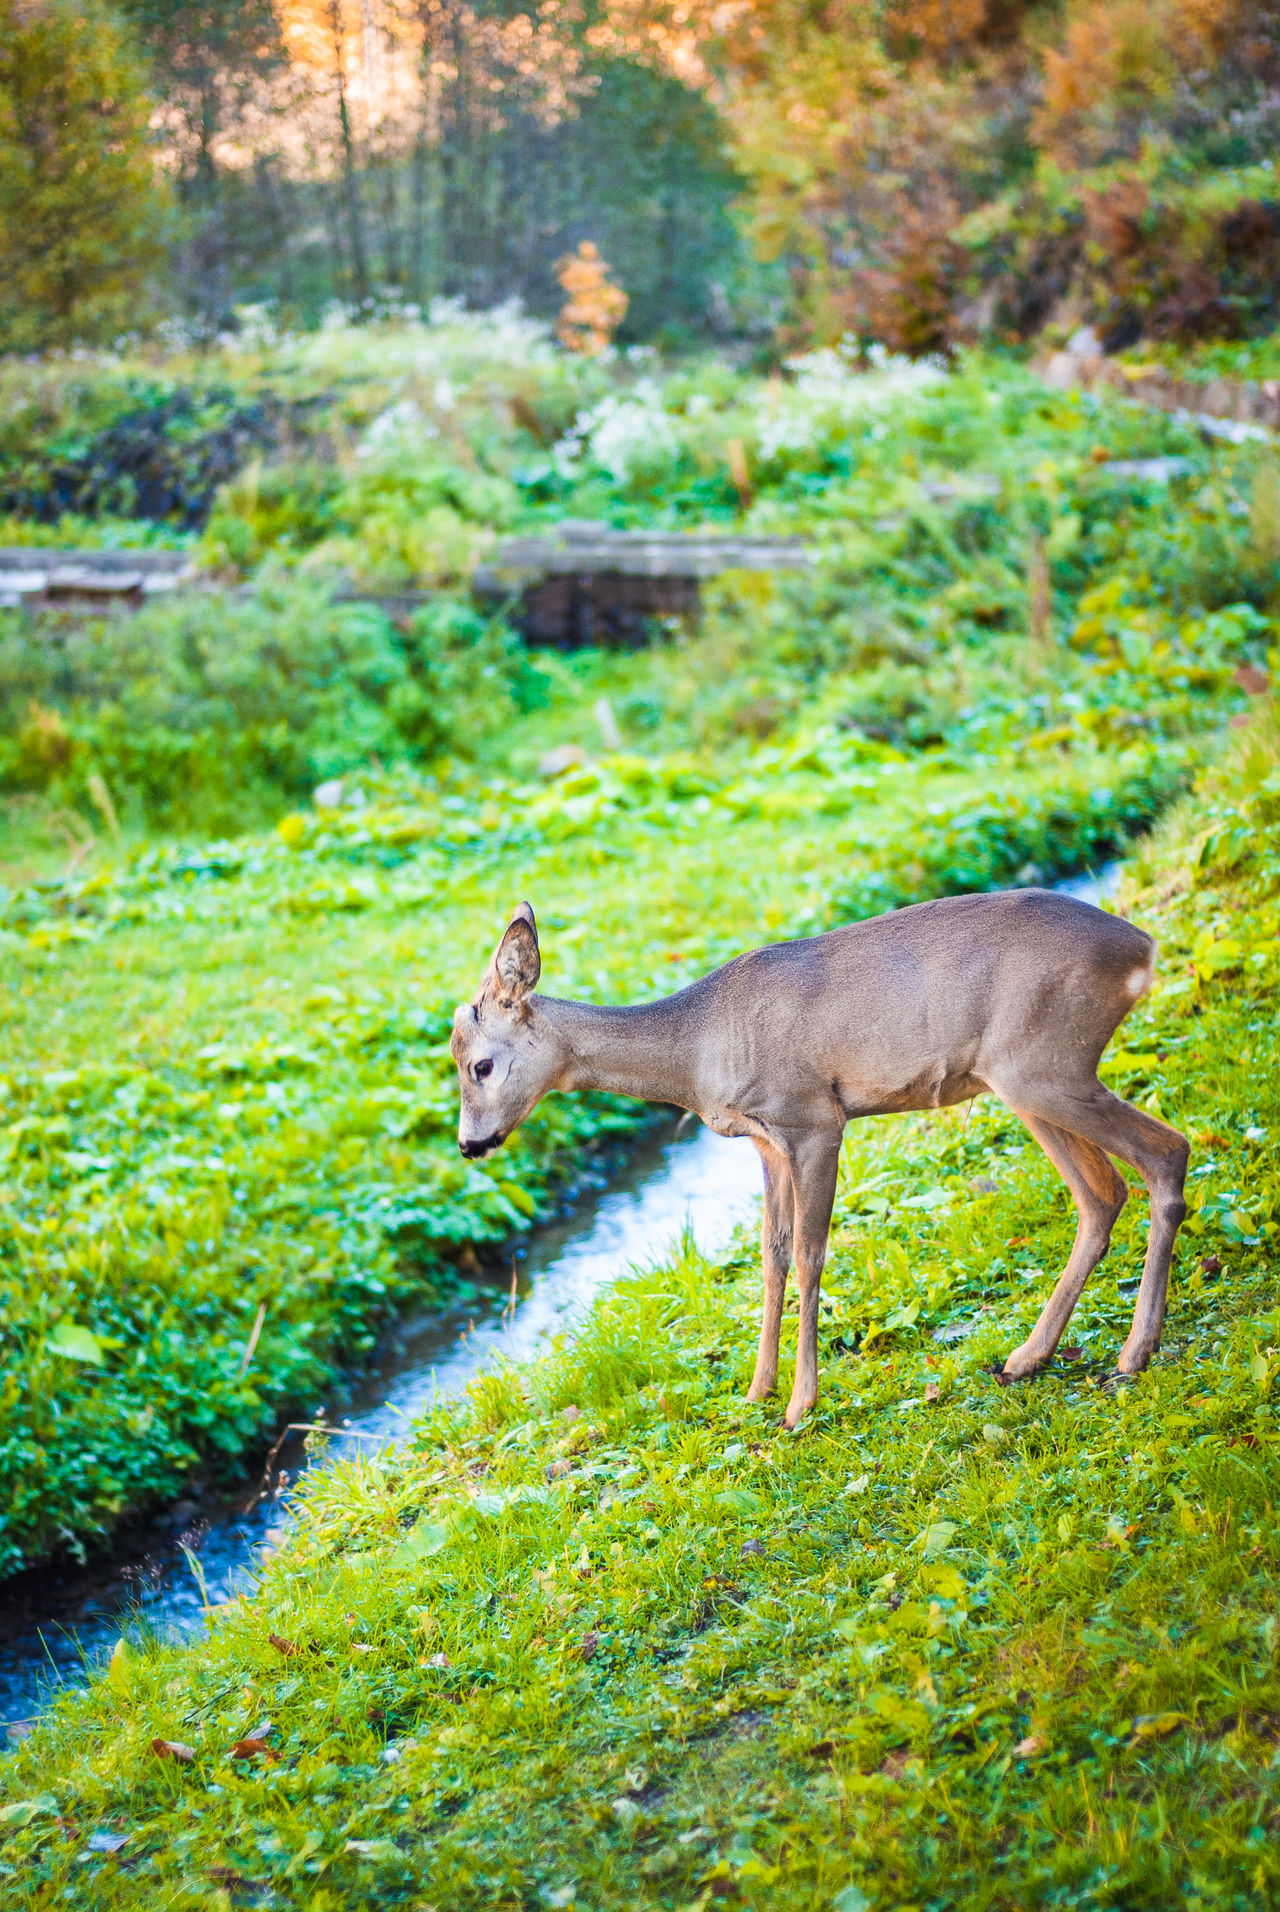 Roebuck on stream. Animal Themes Animal Wildlife Animals In The Wild Day Deer Forest Full Length Grass Green Color Mammal Nature No People One Animal Outdoors Roe Deer Roebuck Roé Stream